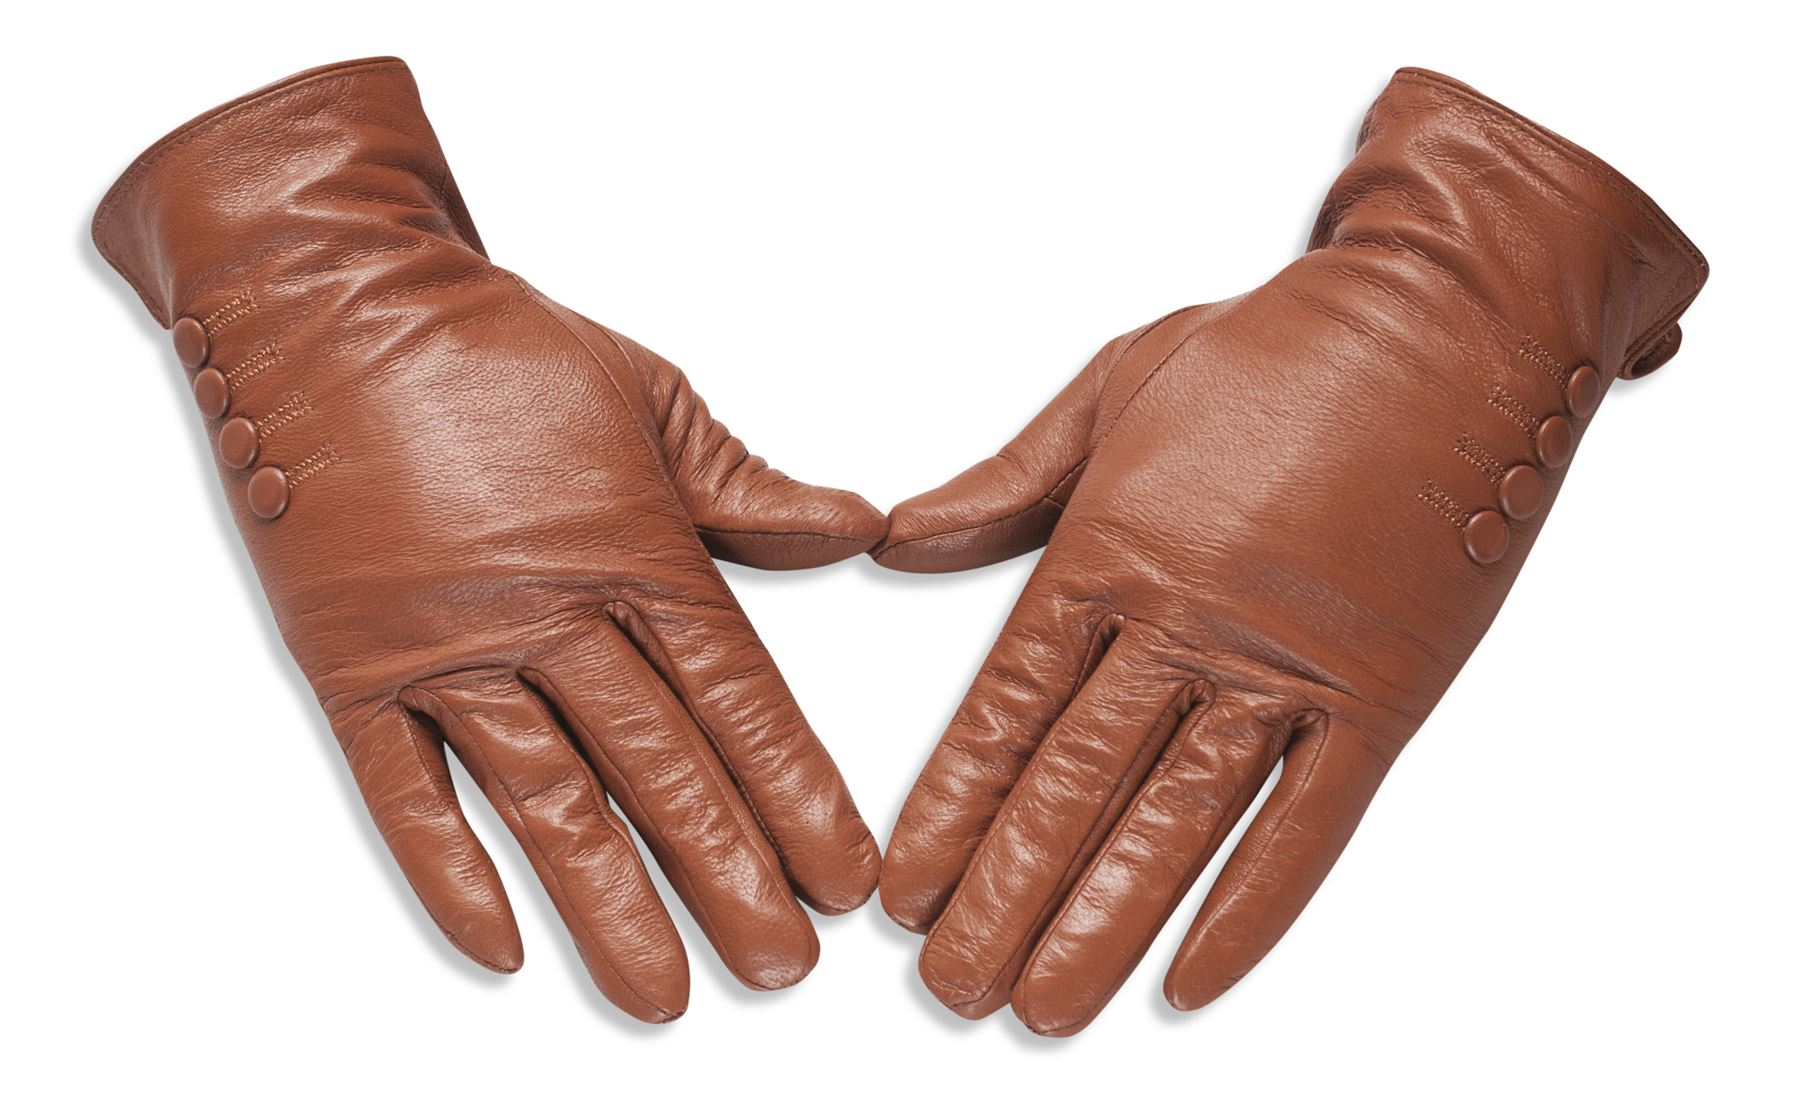 Find great deals on eBay for womens soft leather gloves. Shop with confidence.